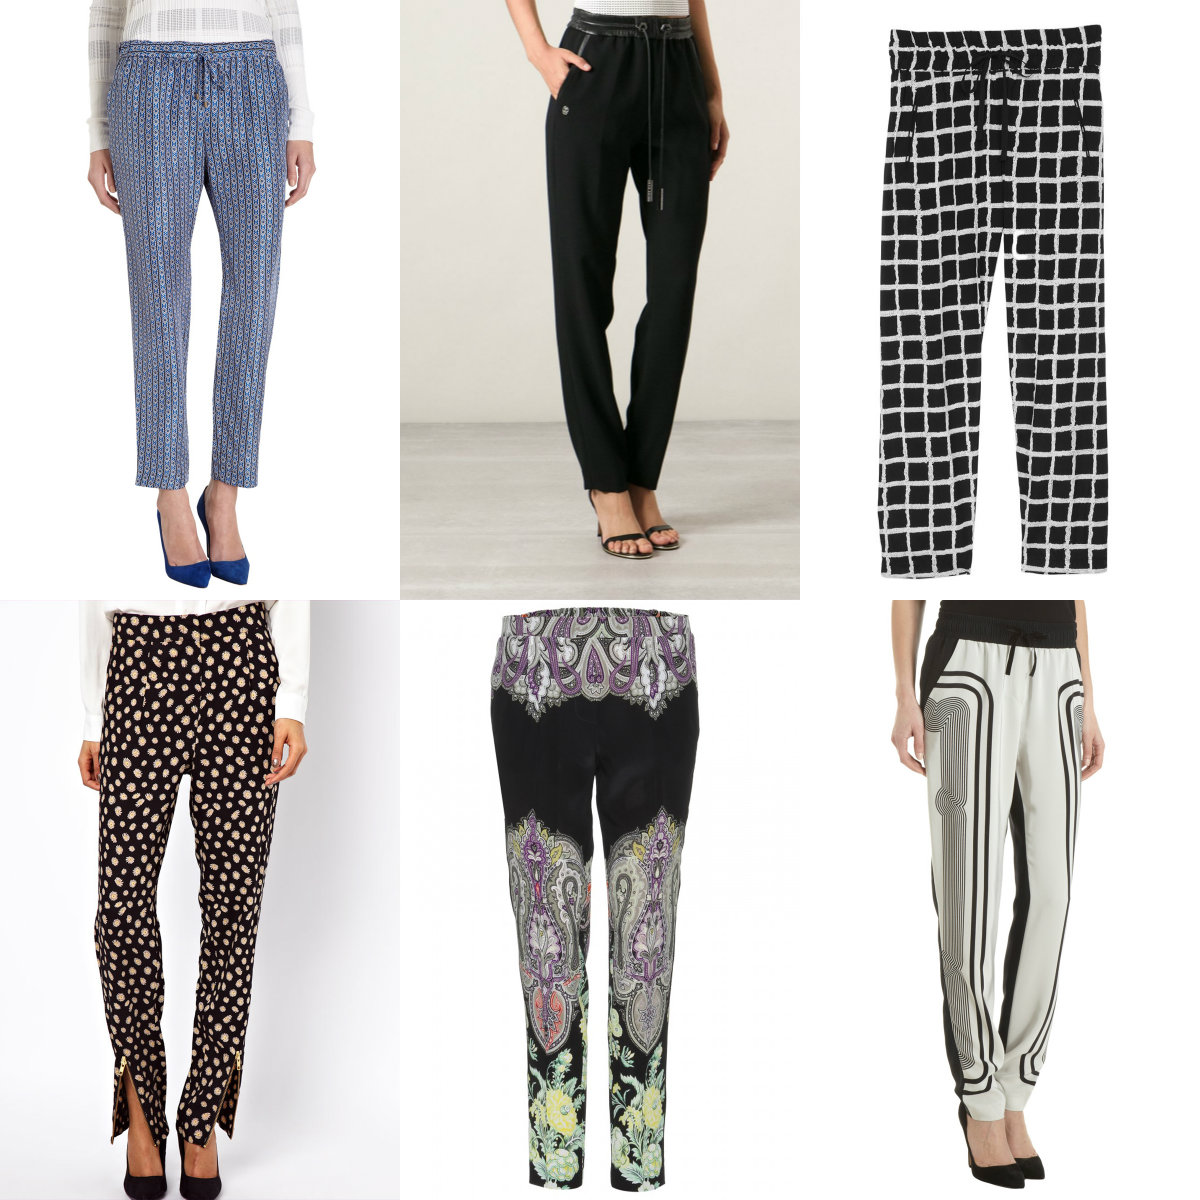 slouchy pants collage